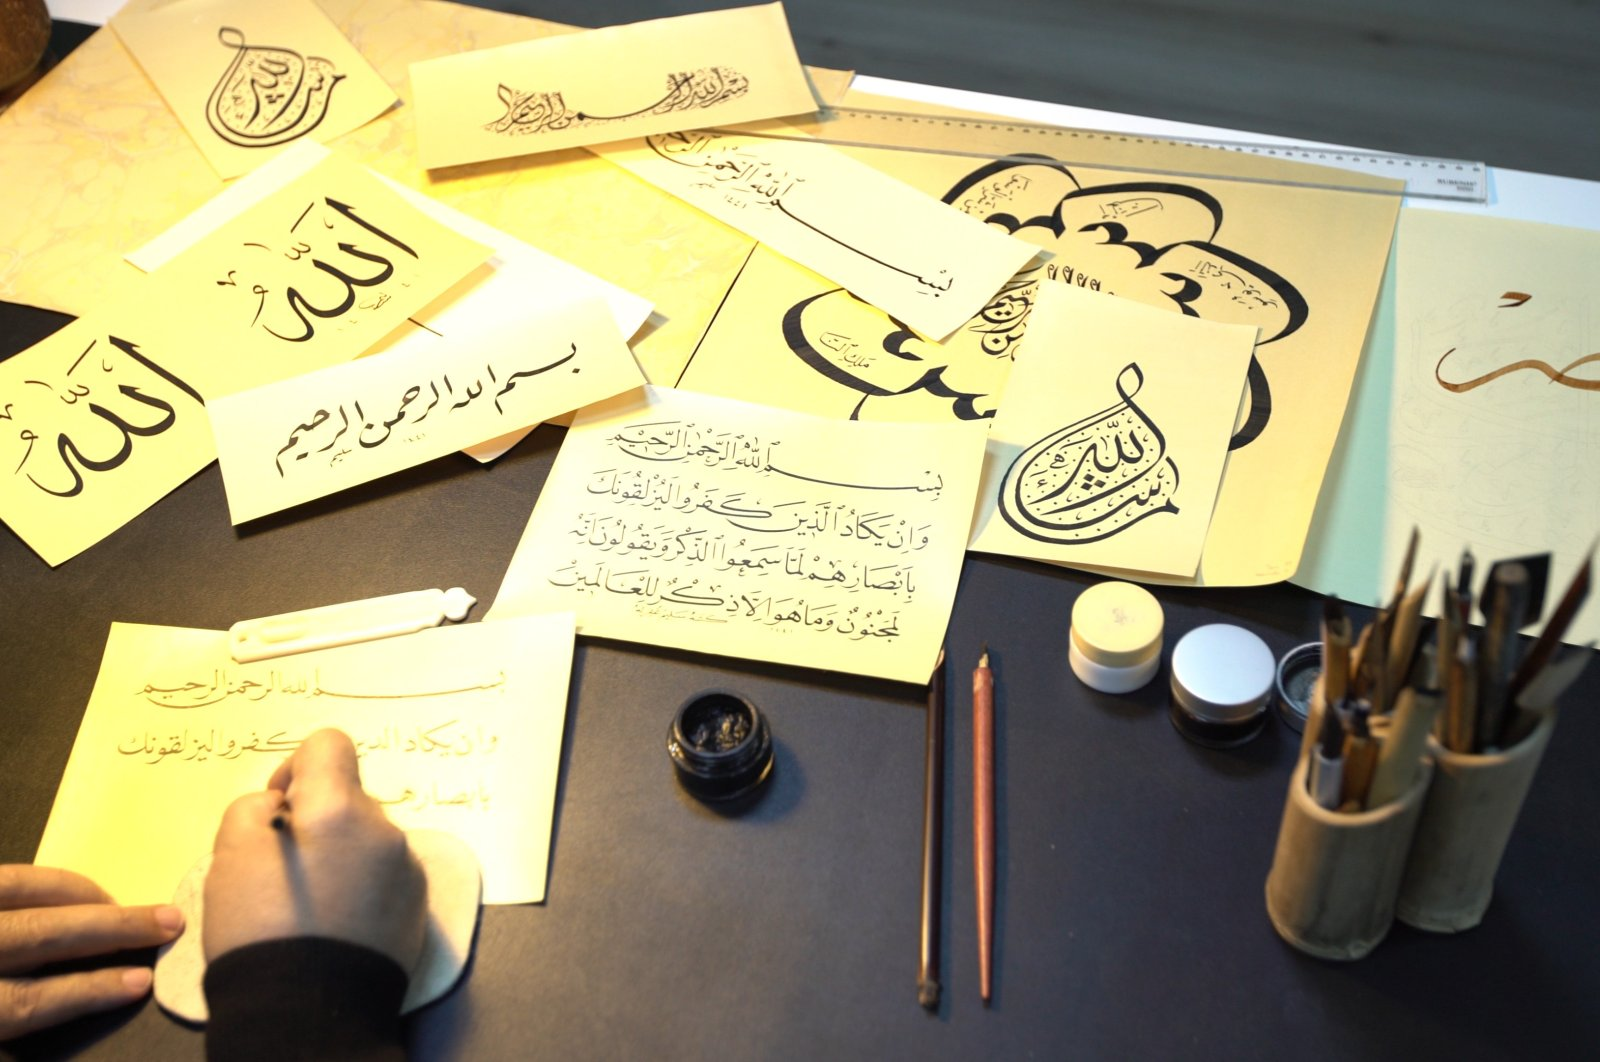 Islamic calligraphy is the artistic practice of handwriting and calligraphy based upon the alphabet in the lands sharing a common Islamic cultural heritage. (İHA Photo)